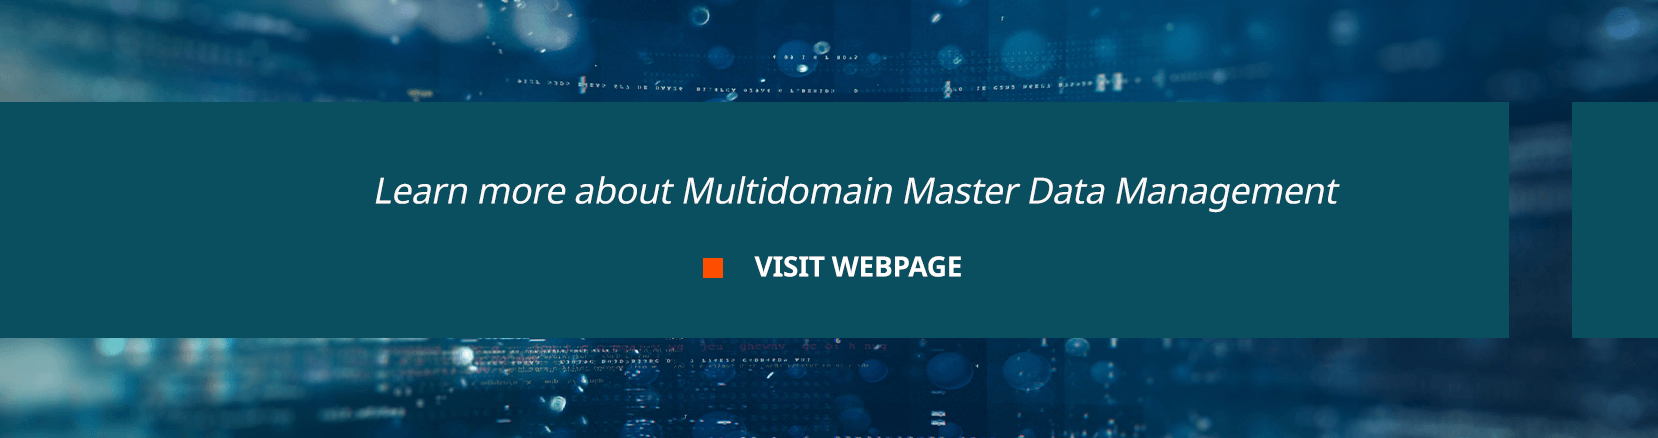 Learn more about Multidomain Master Data Management